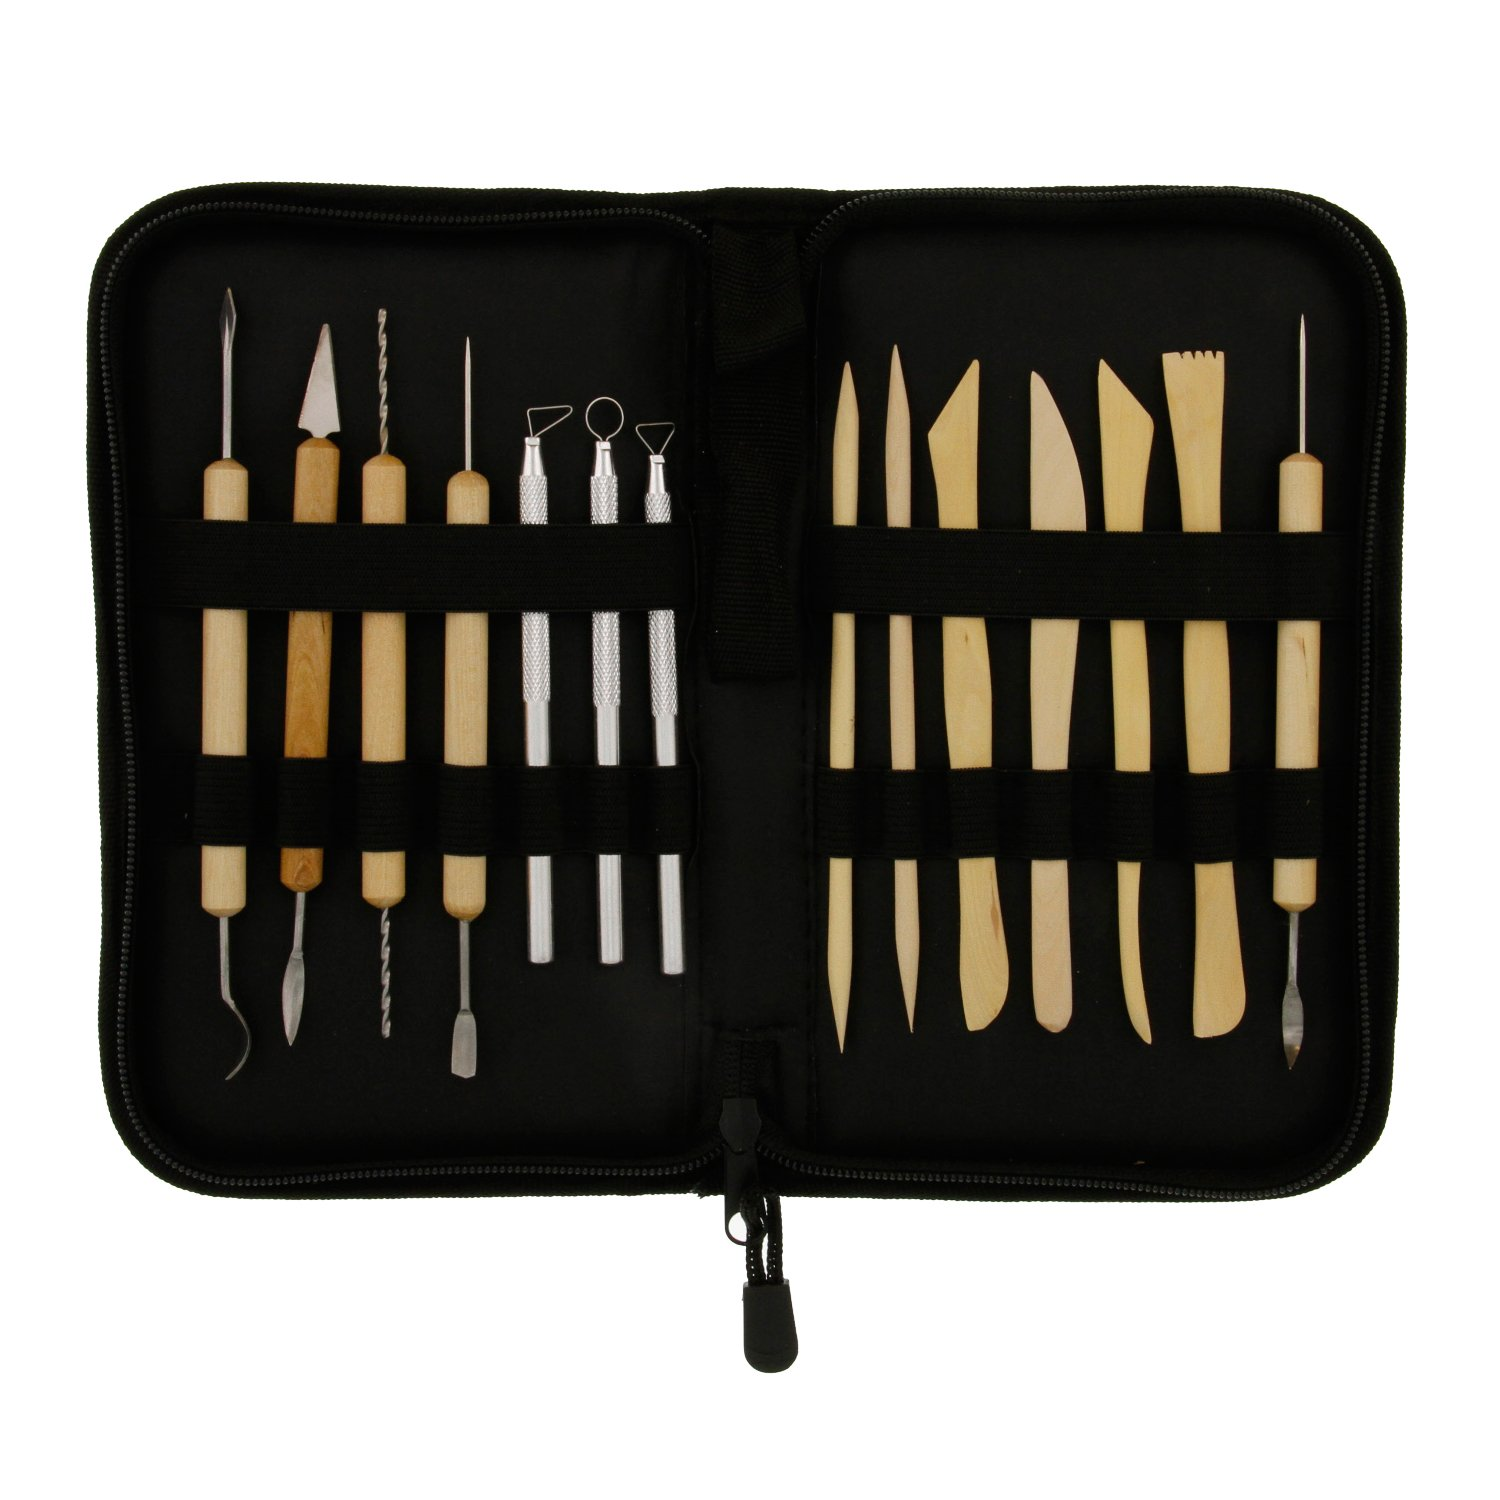 US Art Supply 14-Piece Pottery Clay Sculpture /& Ceramics Tool Set with Canvas Zippered Case